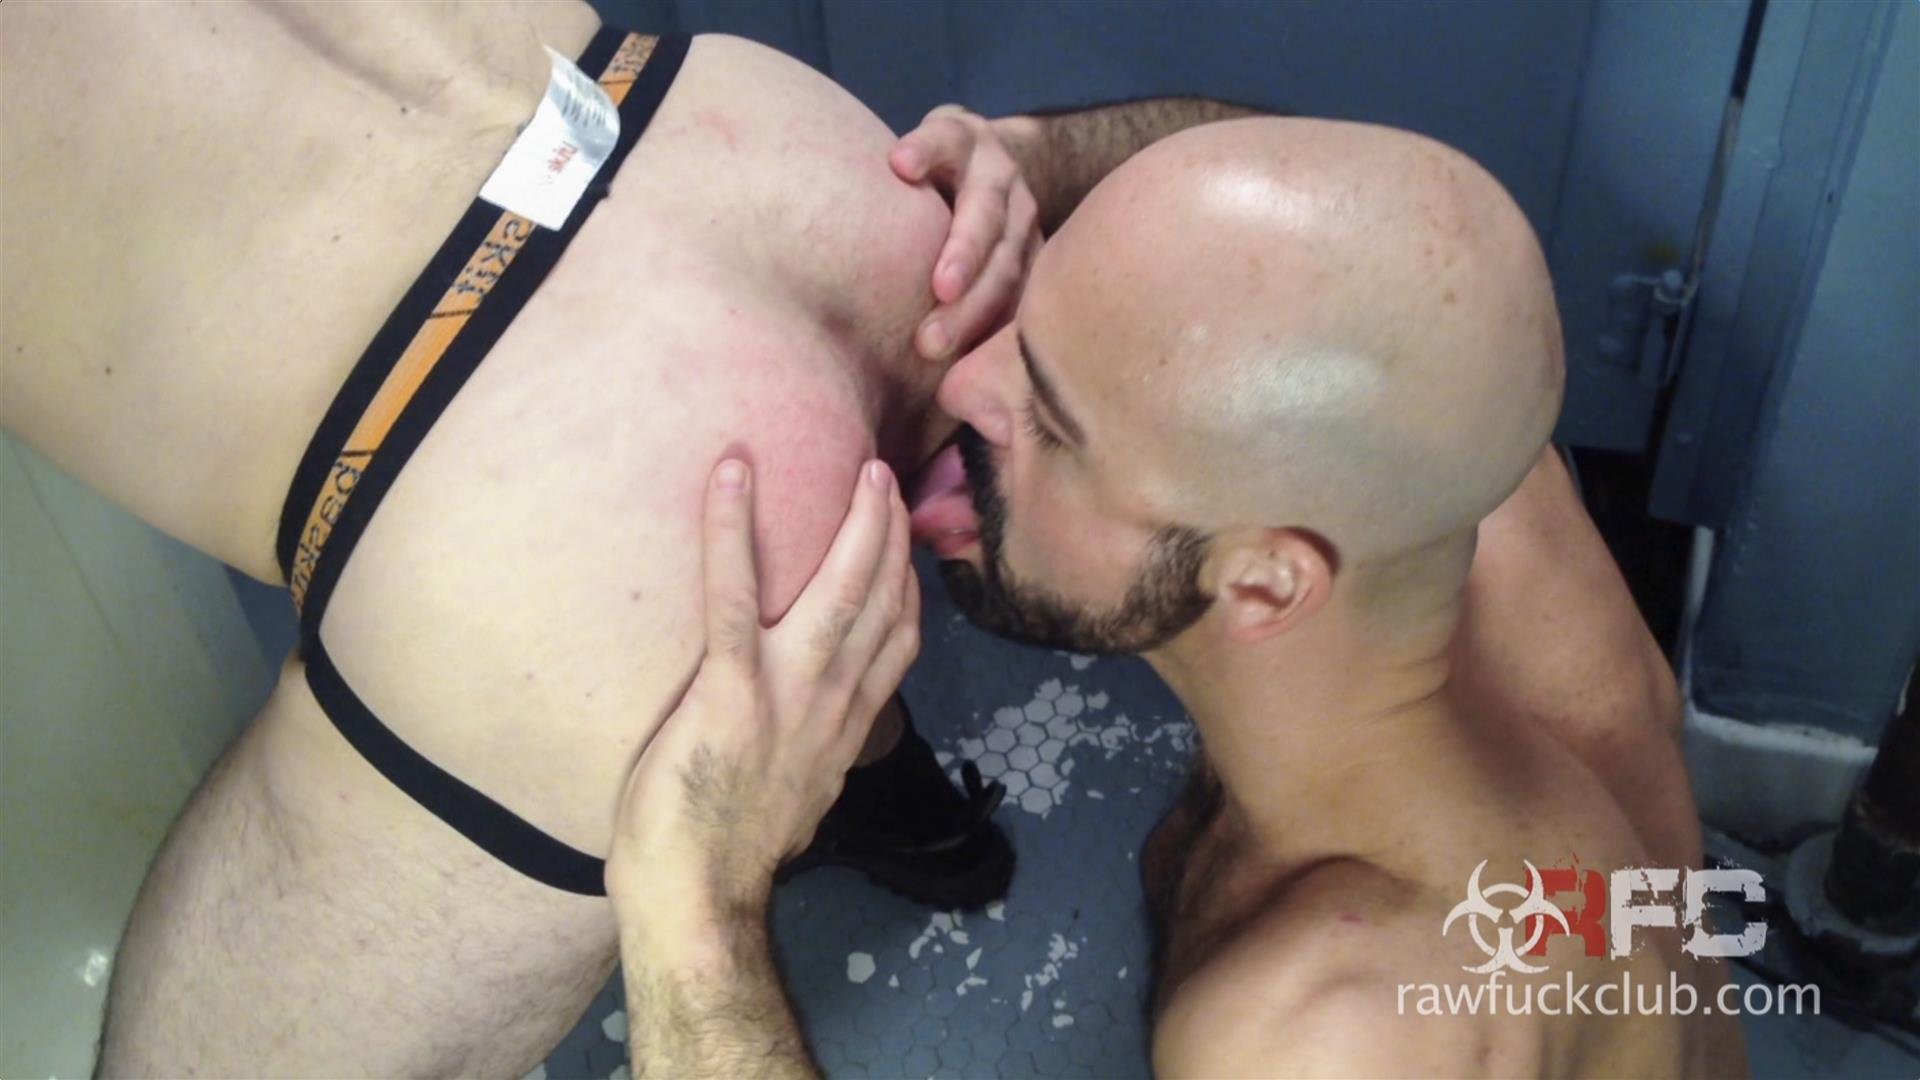 Raw-Fuck-Club-Adam-Russo-and-Kyle-Ferris-Anonymous-Bareback-Sex-Amateur-Gay-Porn-4 Adam Russo Barebacking A Stranger In A Dirty Bar Bathroom